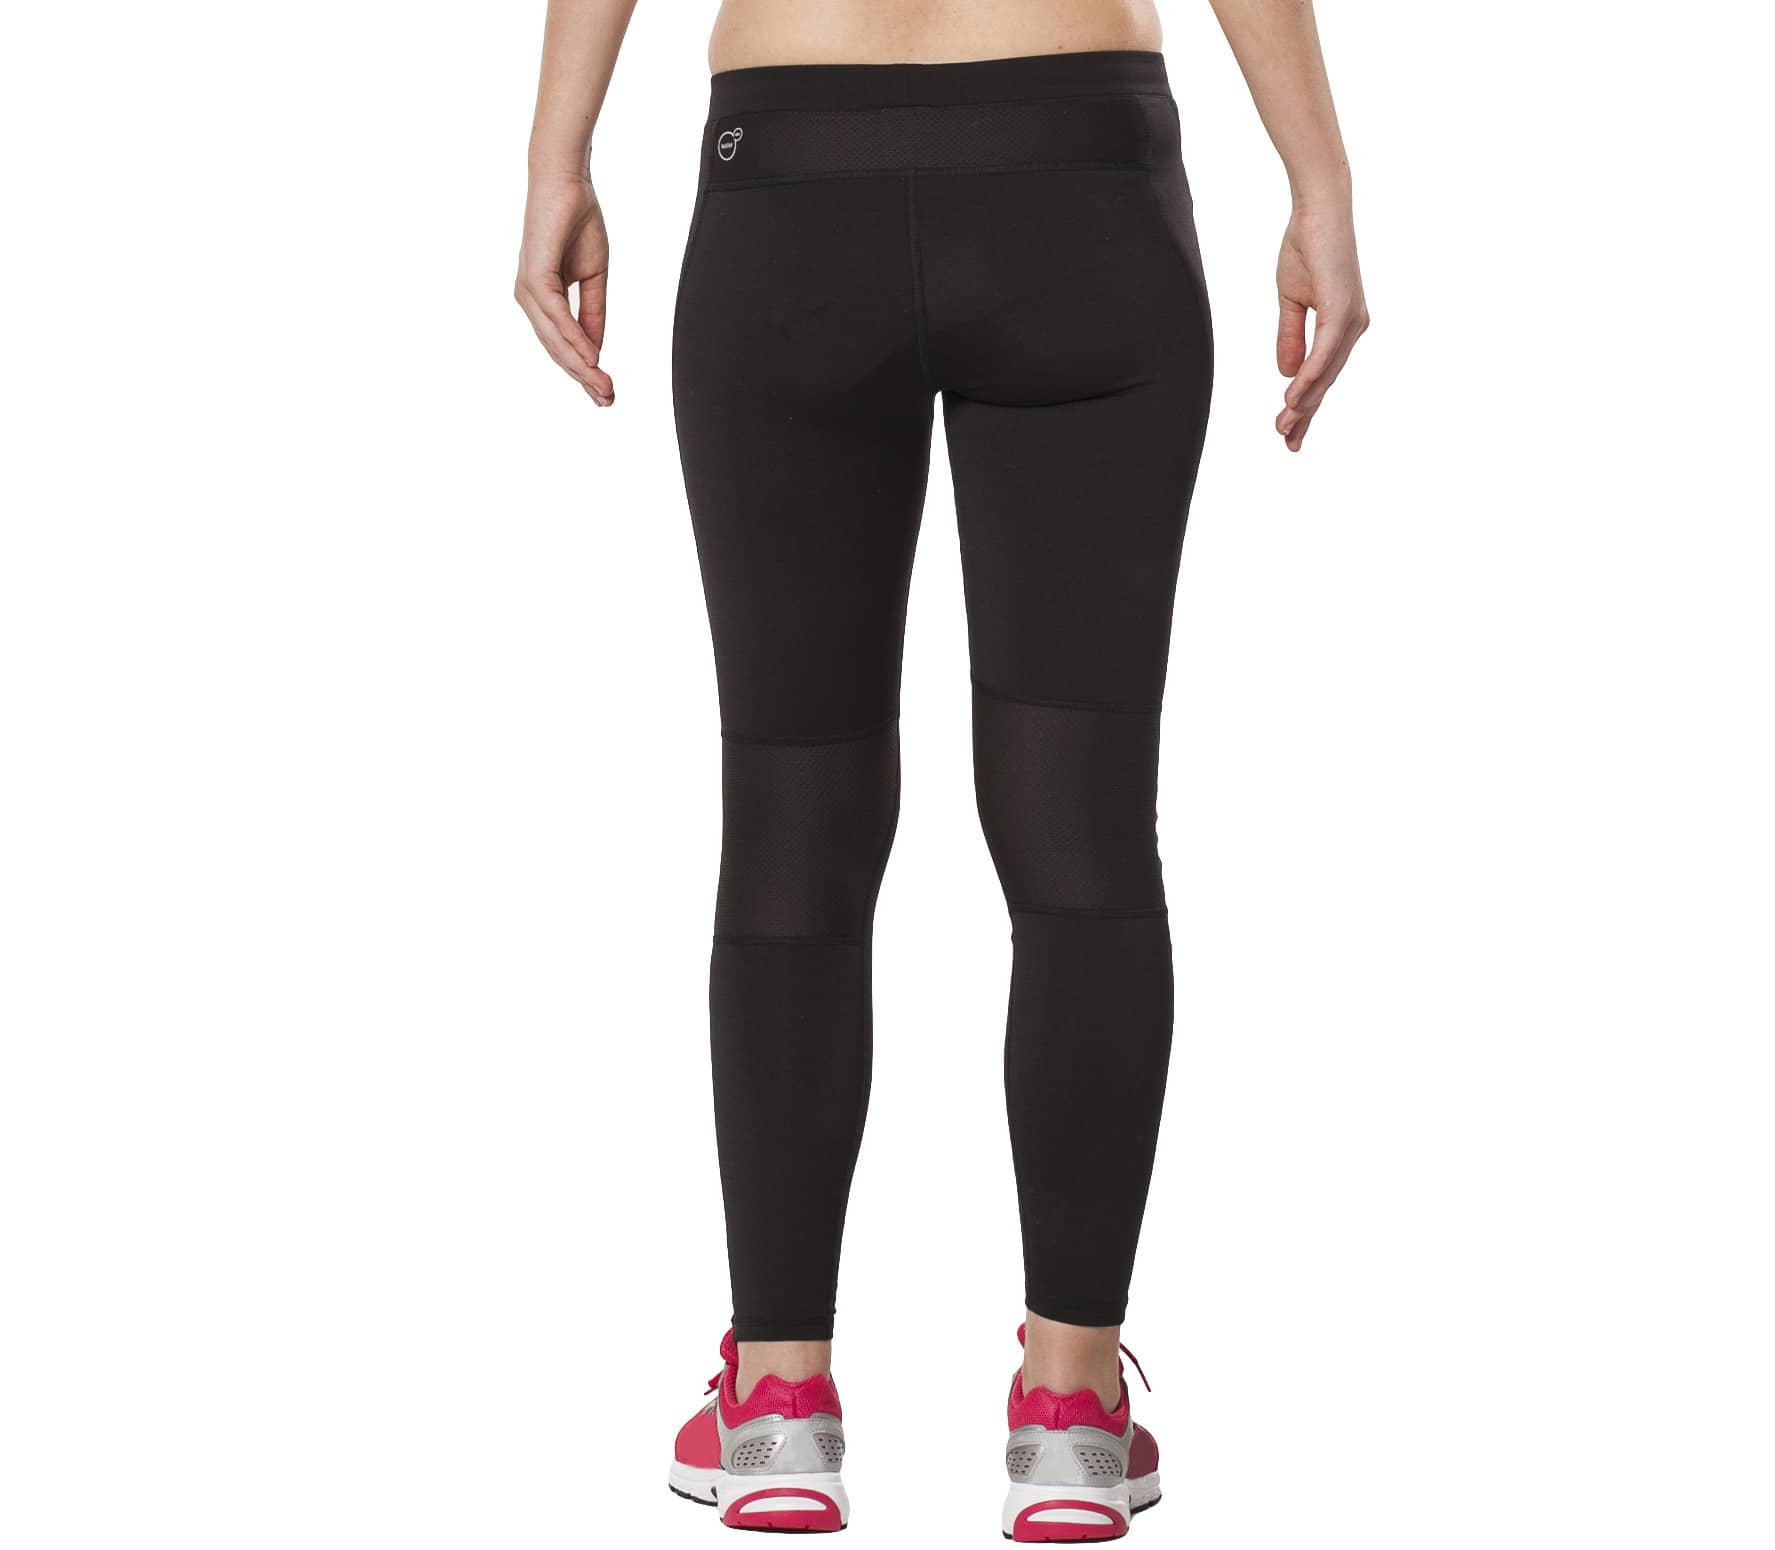 Puma - PR Pure Winter Long Tight Dam löparbyxor (svart) handla ... cf5e852c2f2af